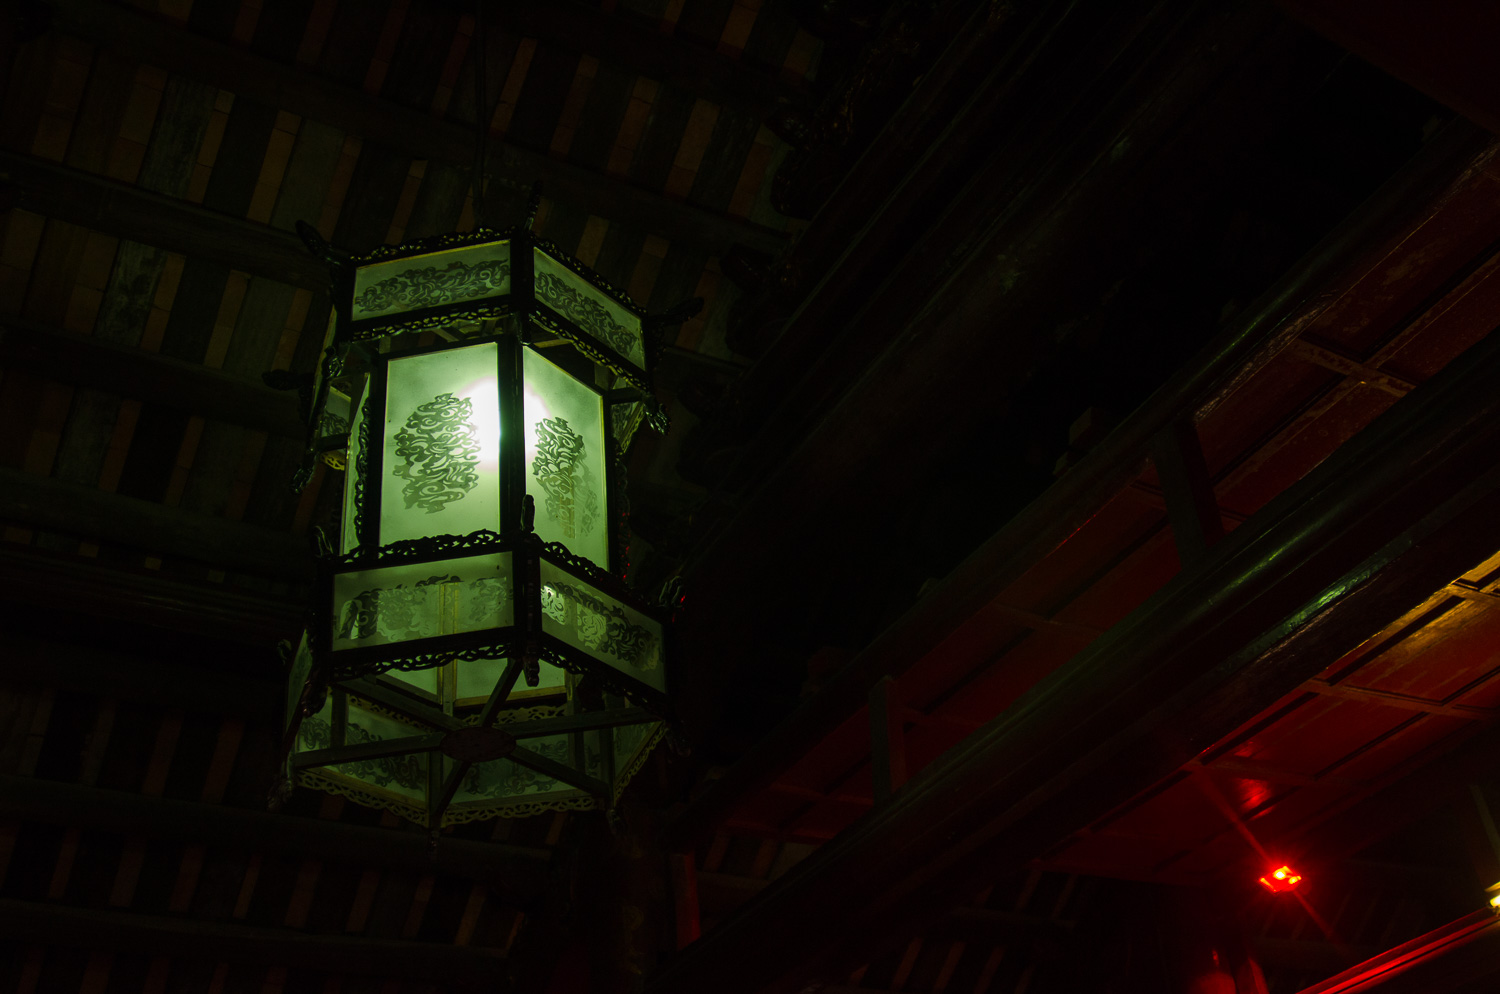 hanoi-temple-of-literature-lamp.jpg